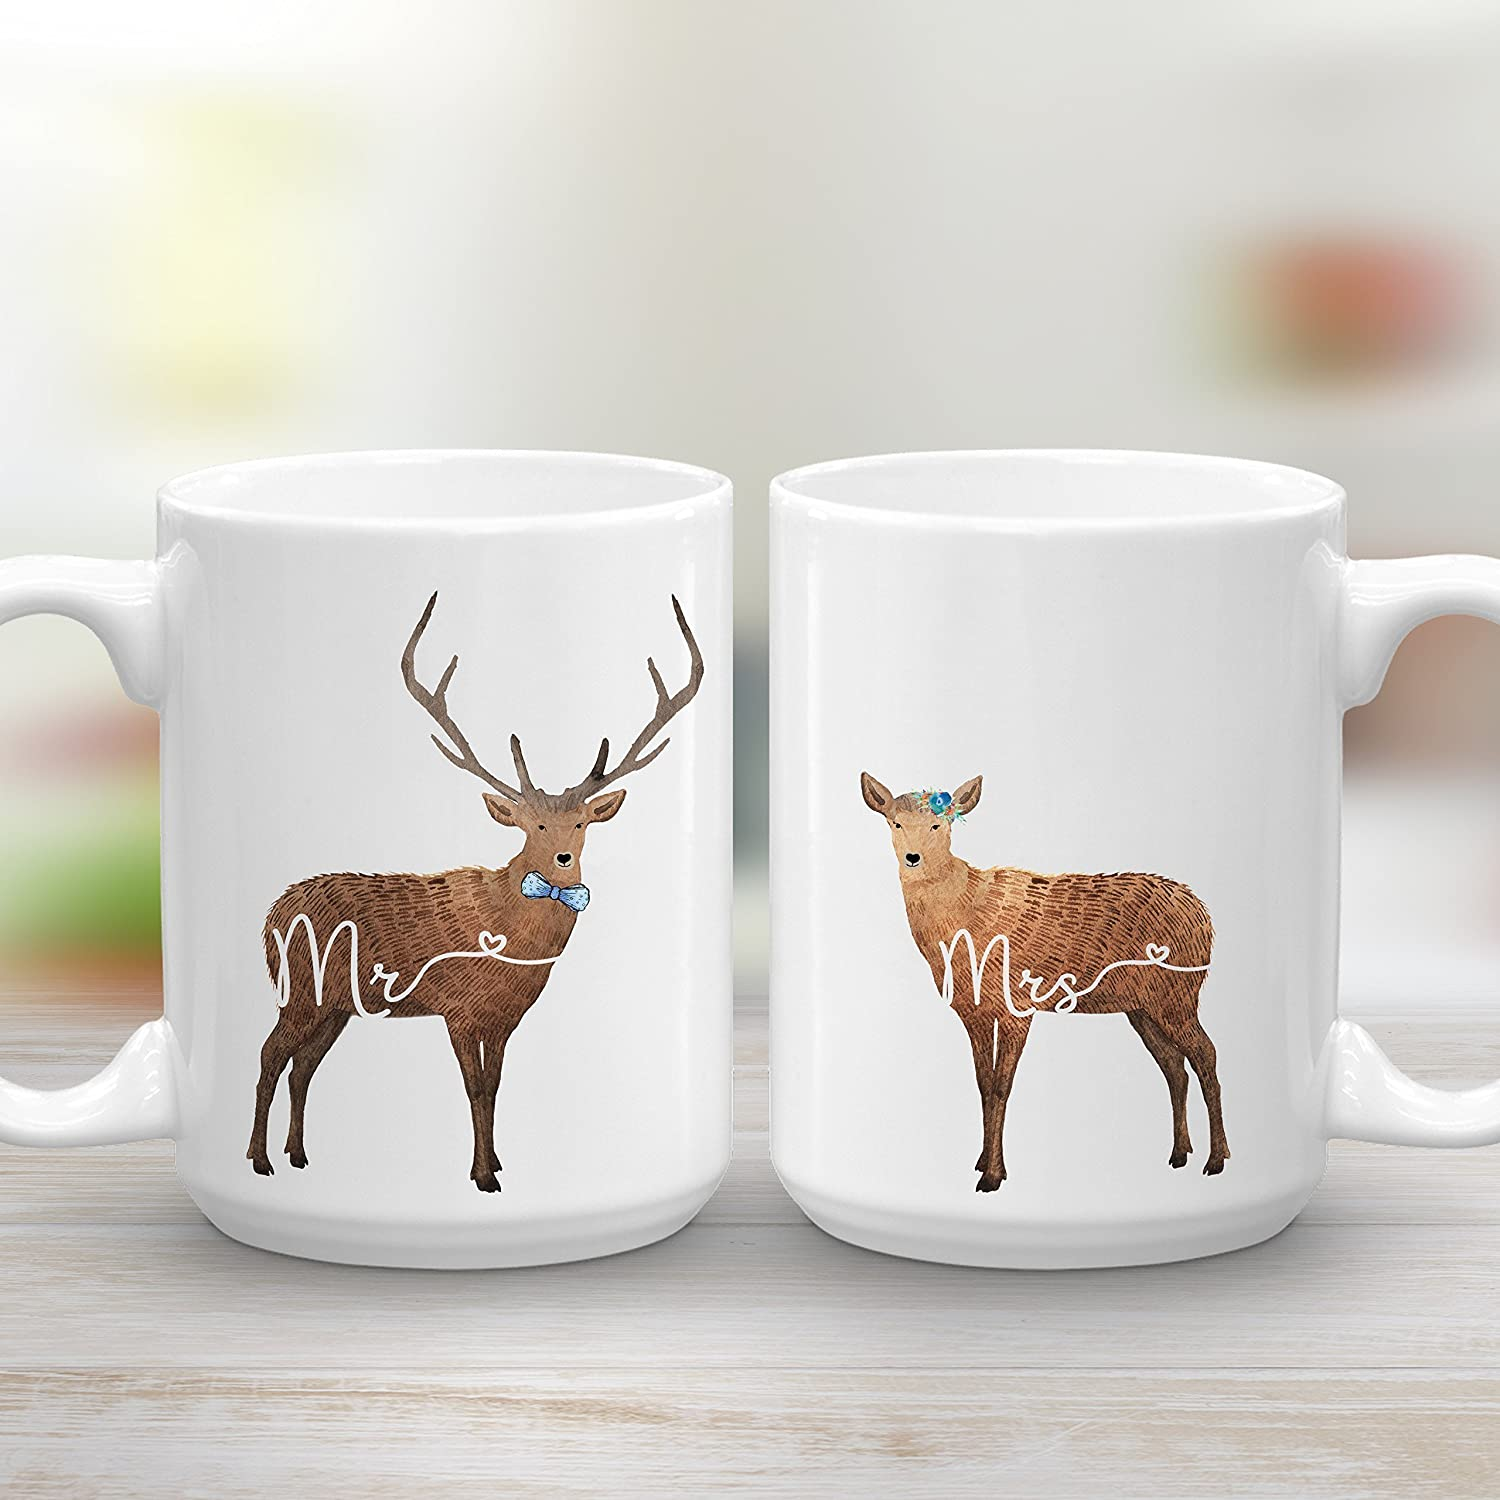 Mr and Mrs Mug Set, Deer Mugs, Large 15oz Two Mug Set, Wedding Engagement Gift, Couples Gift